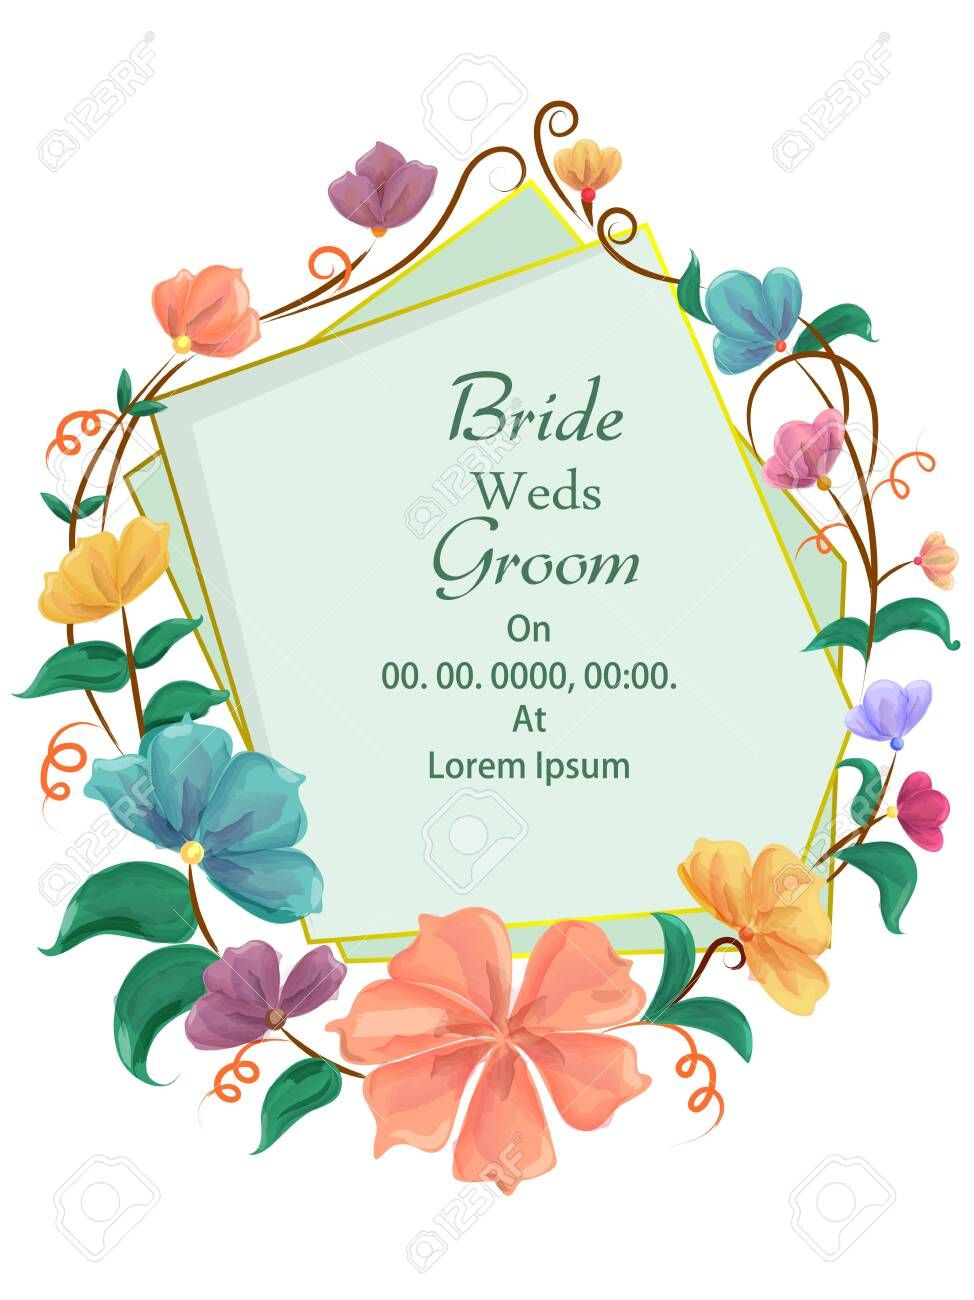 Easy To Edit Vector Illustration Of Floral Design Wedding Invitation Greetings Card Template Bac Greeting Card Template Wedding Invitation Design Card Template